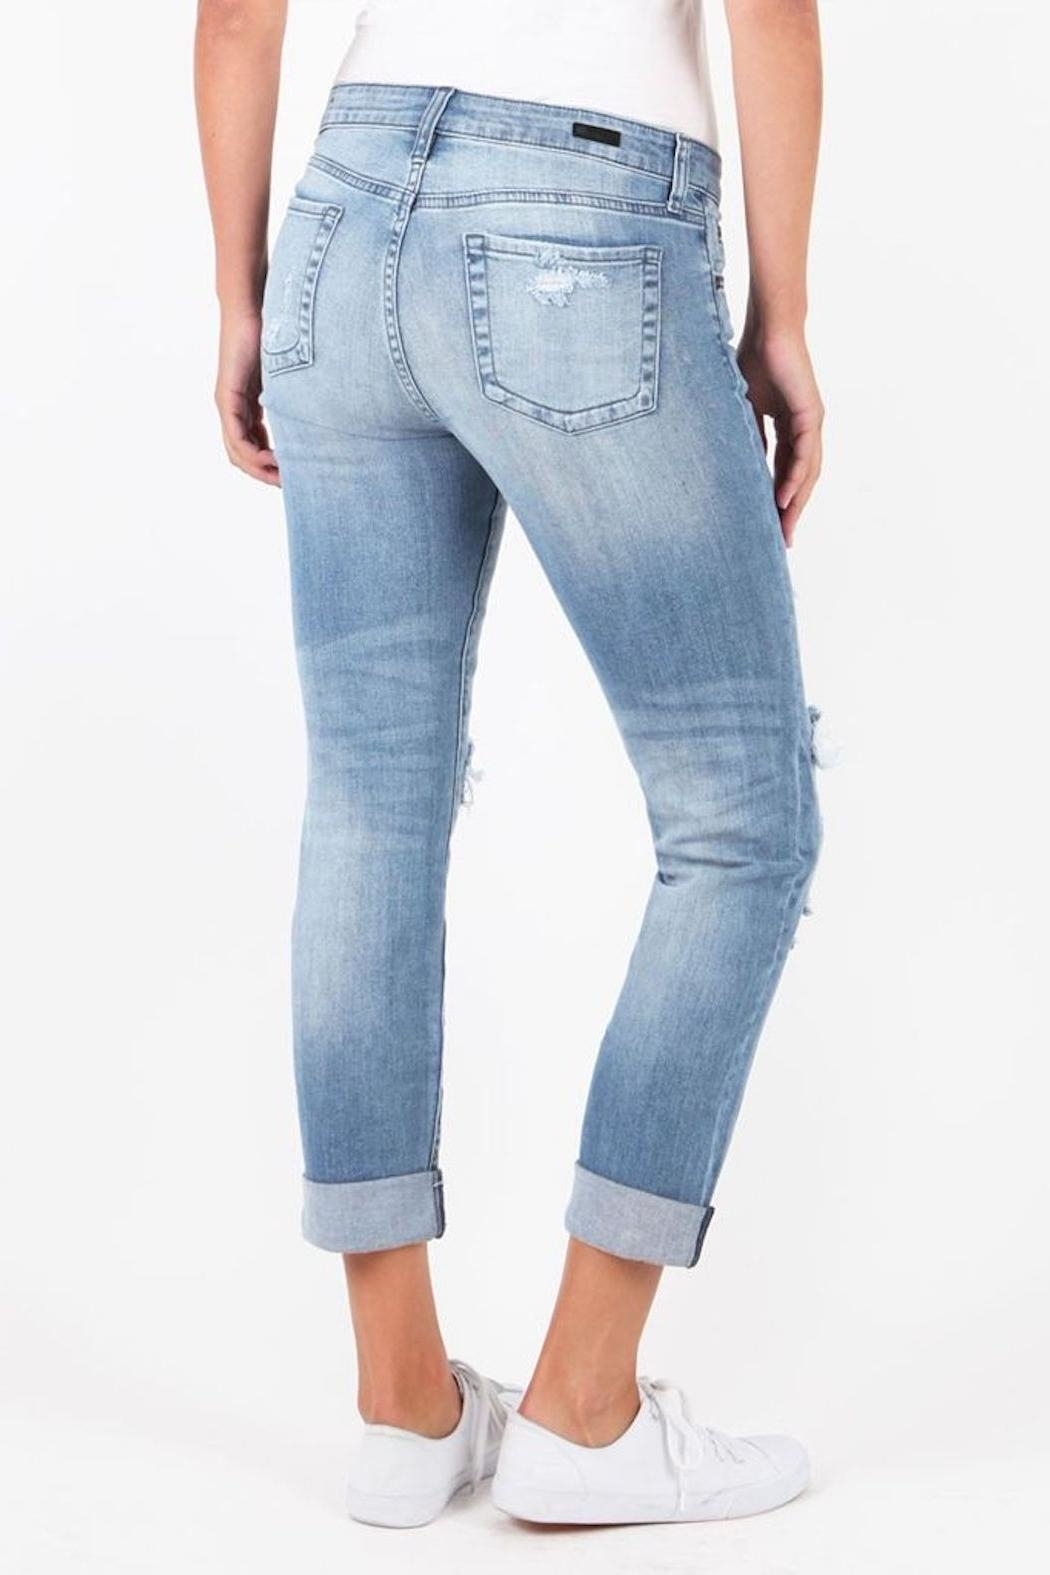 Kut from the Kloth Catherine Patchwork Jeans - Front Full Image